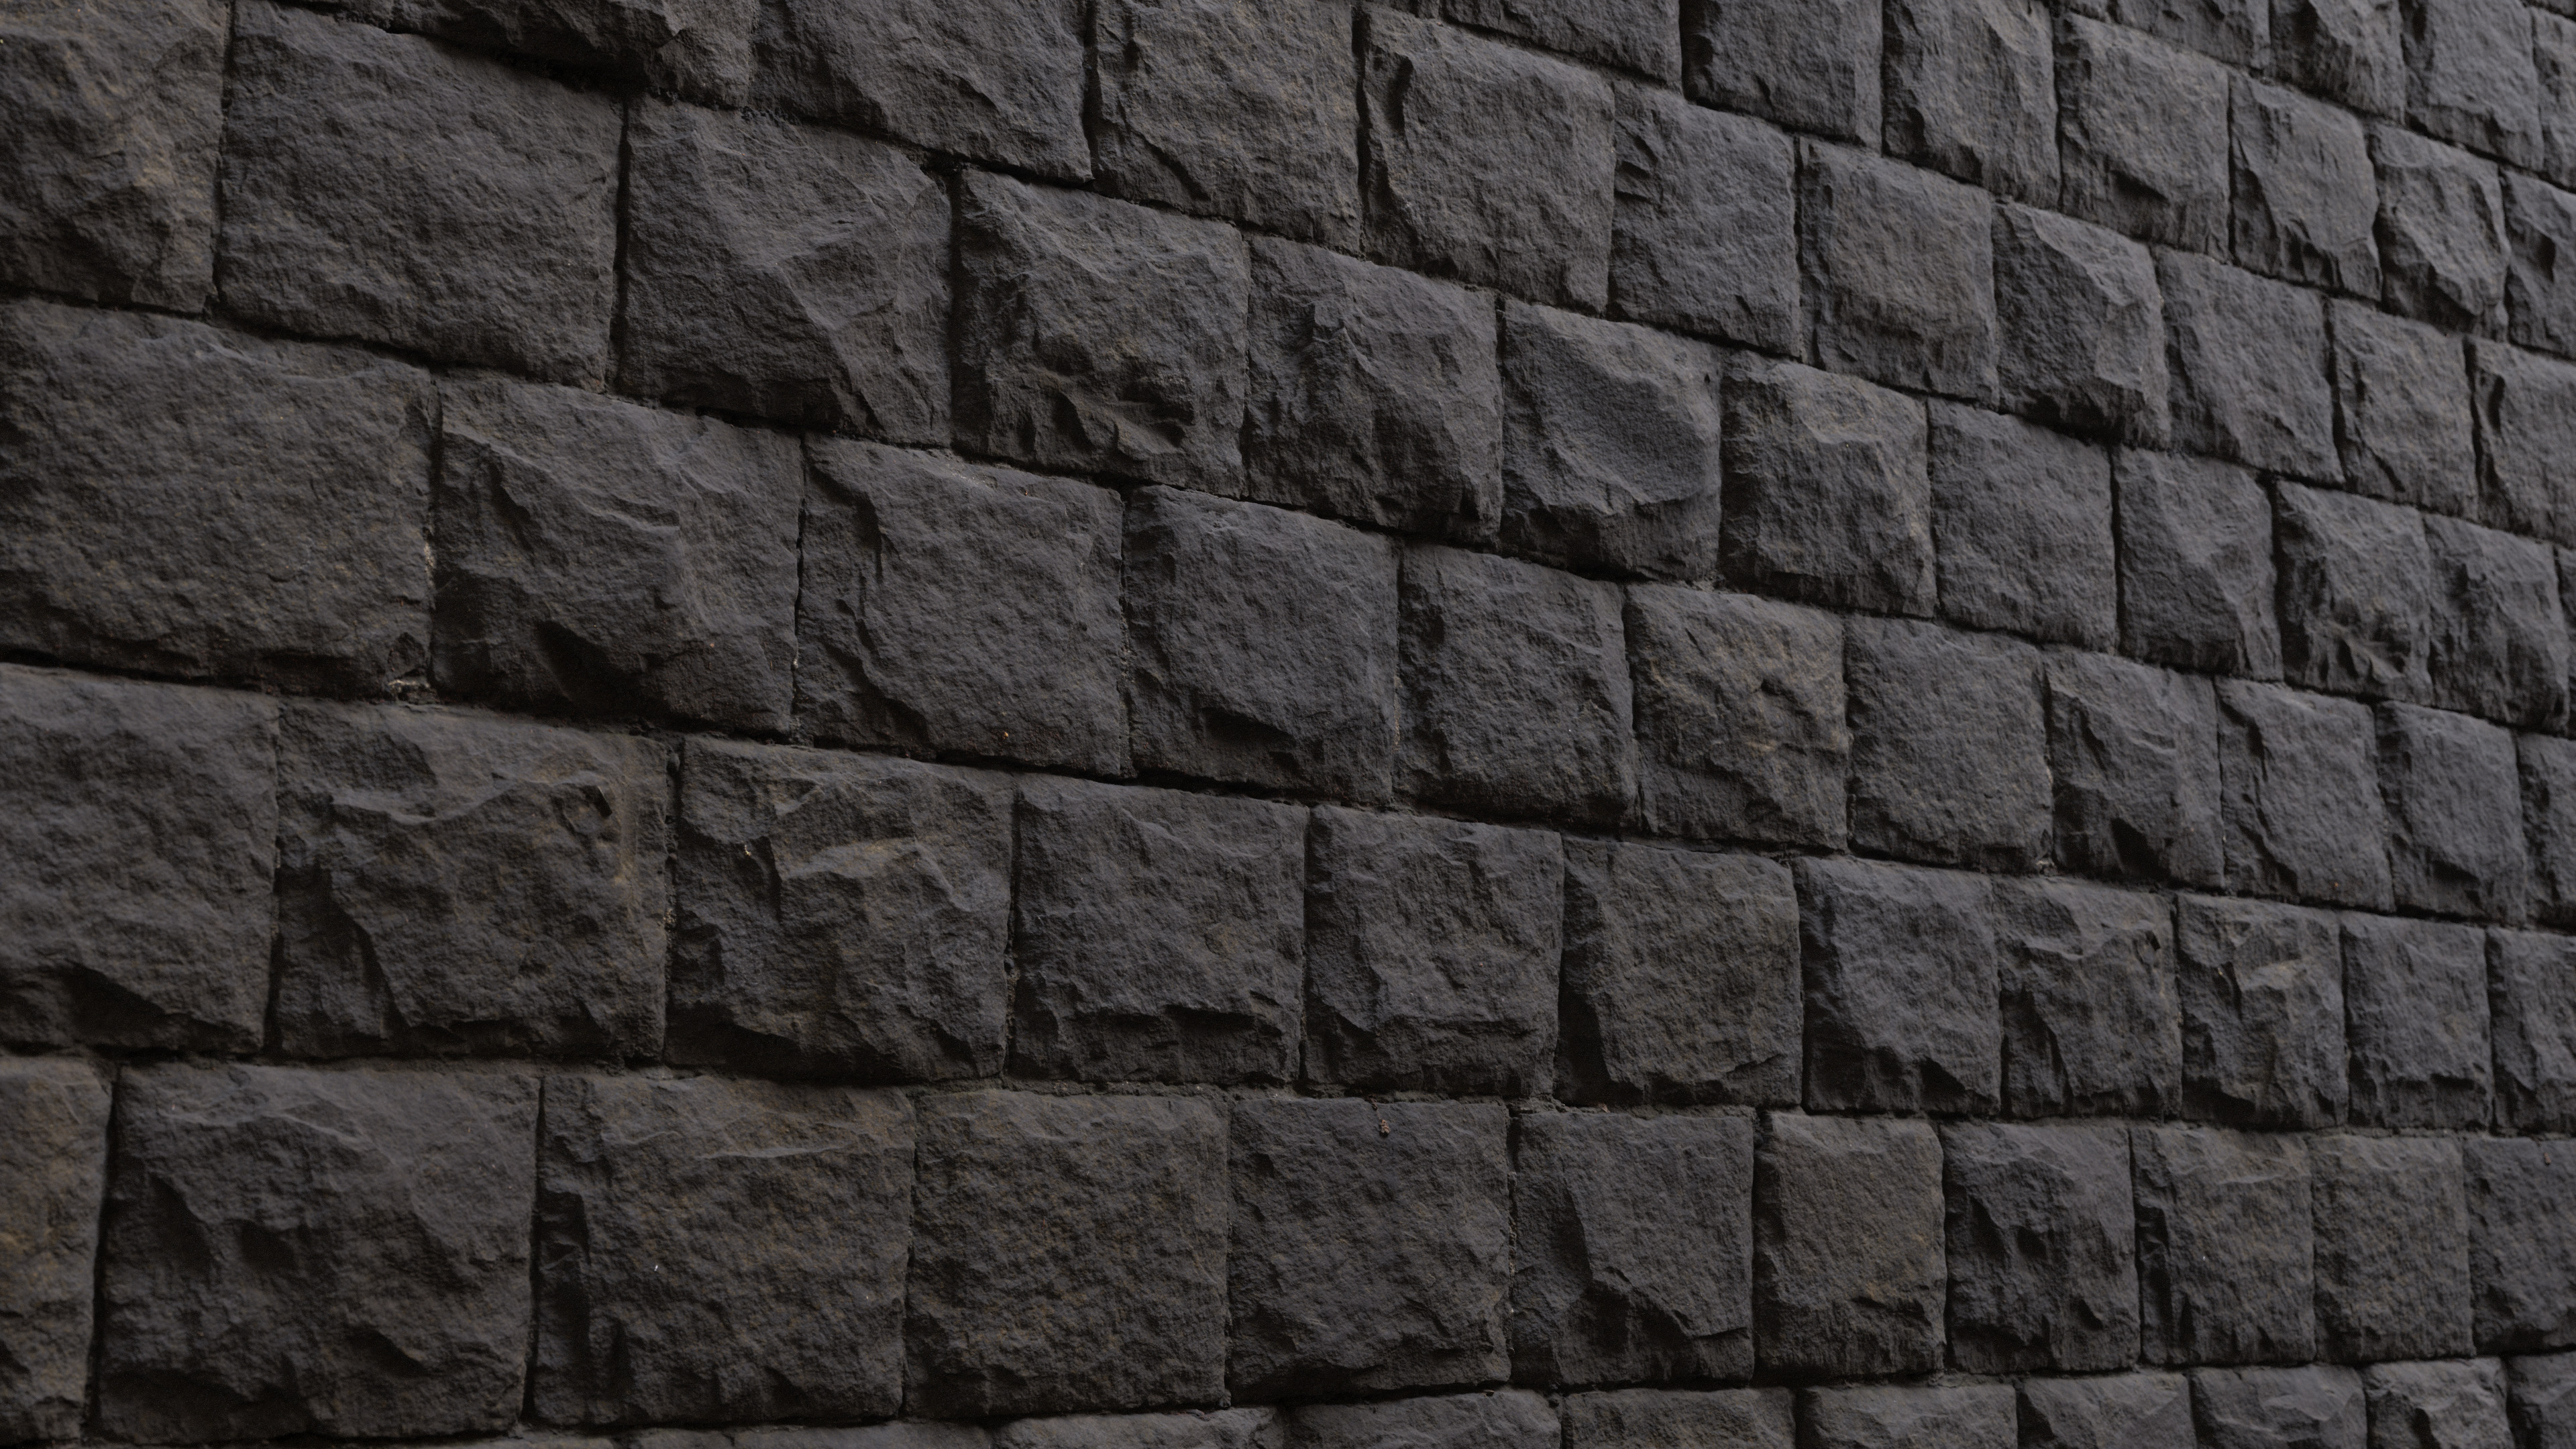 3D Scanned Stone Wall - 2x2 meters